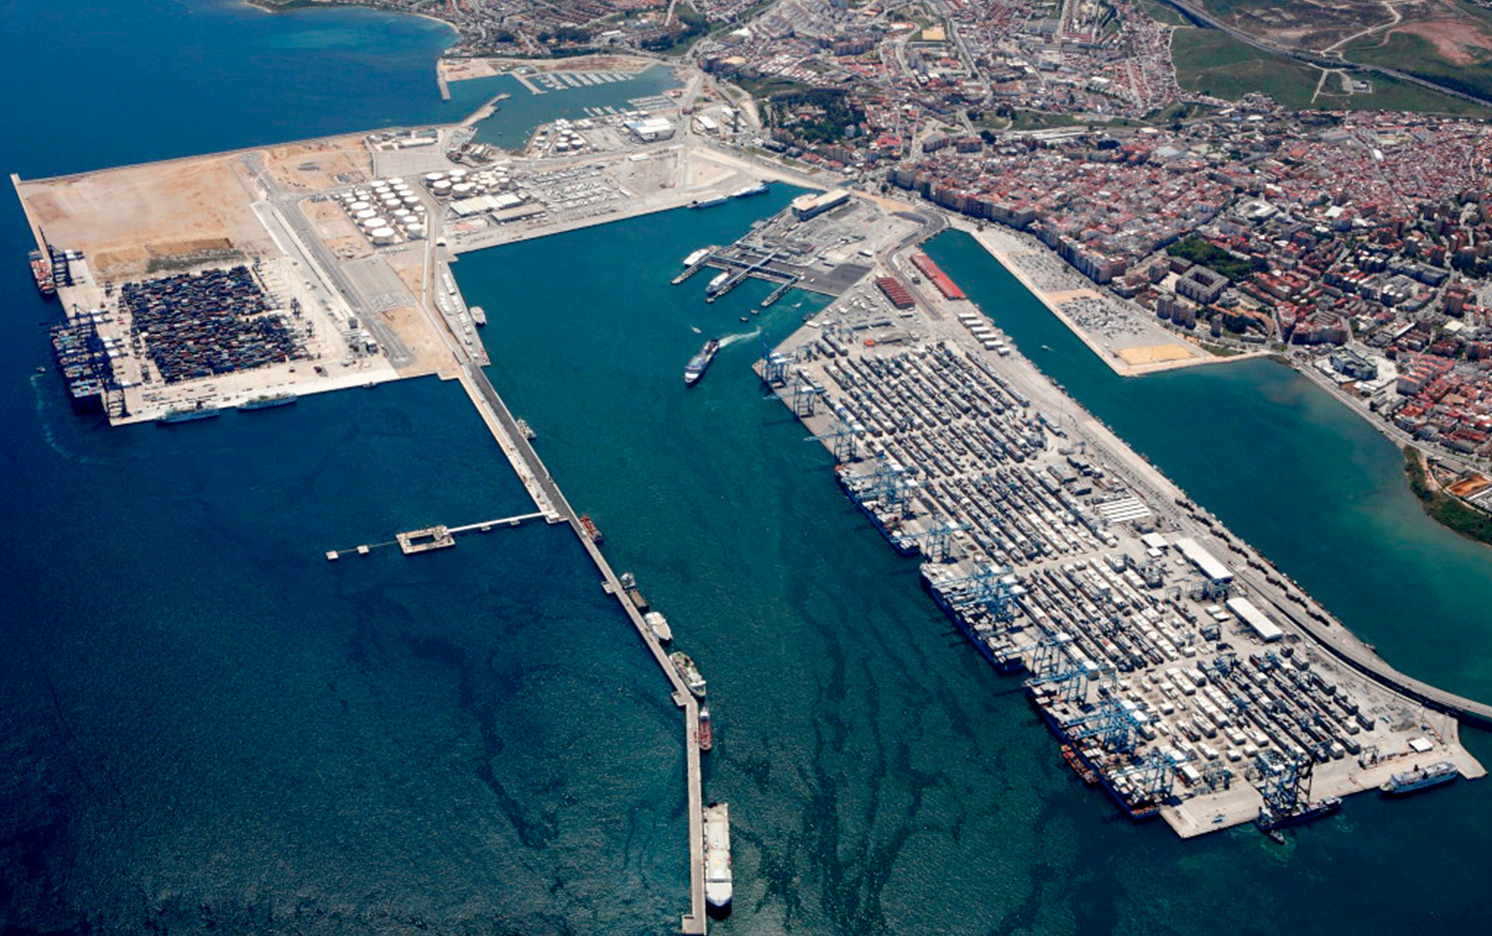 Altrans delegation in Algeciras breaks records